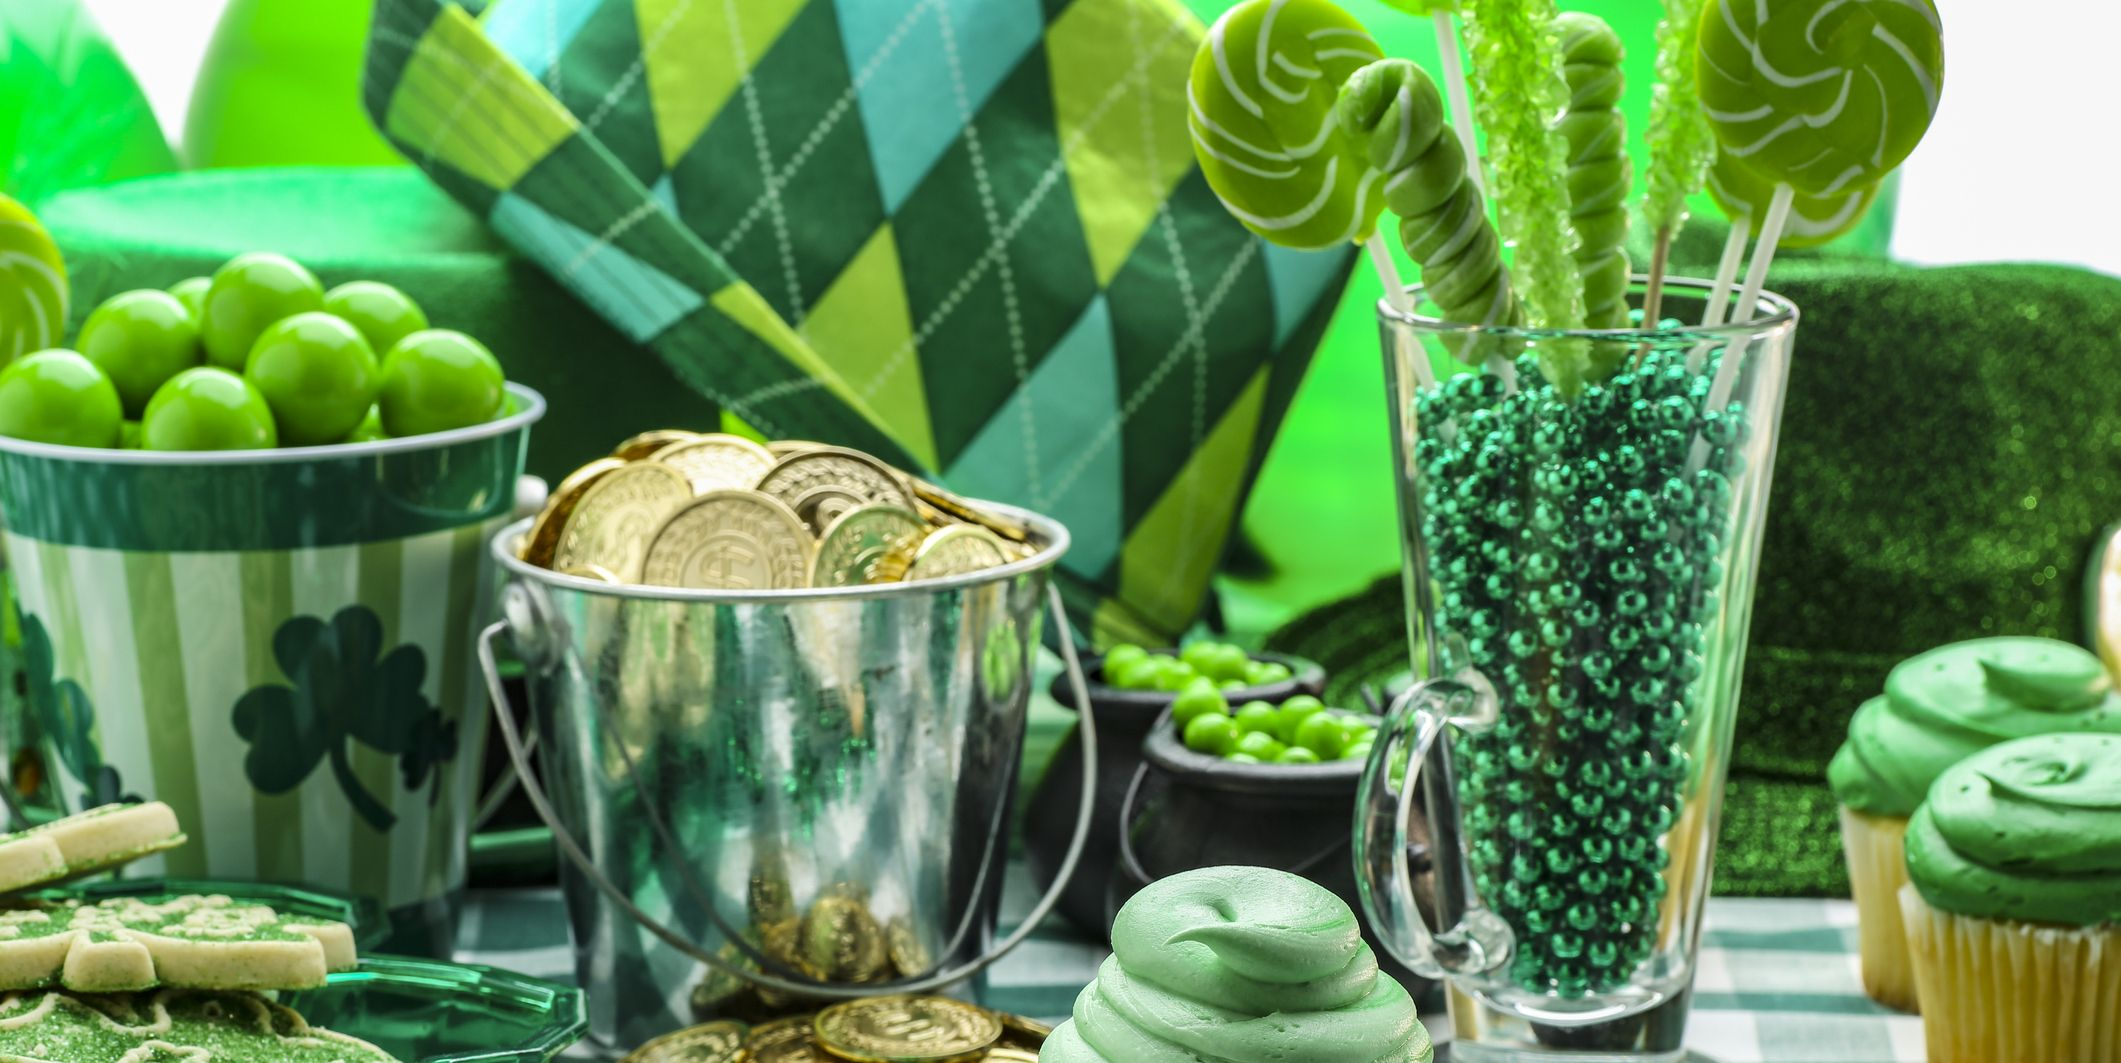 St. Patrick's Day Deals 2020